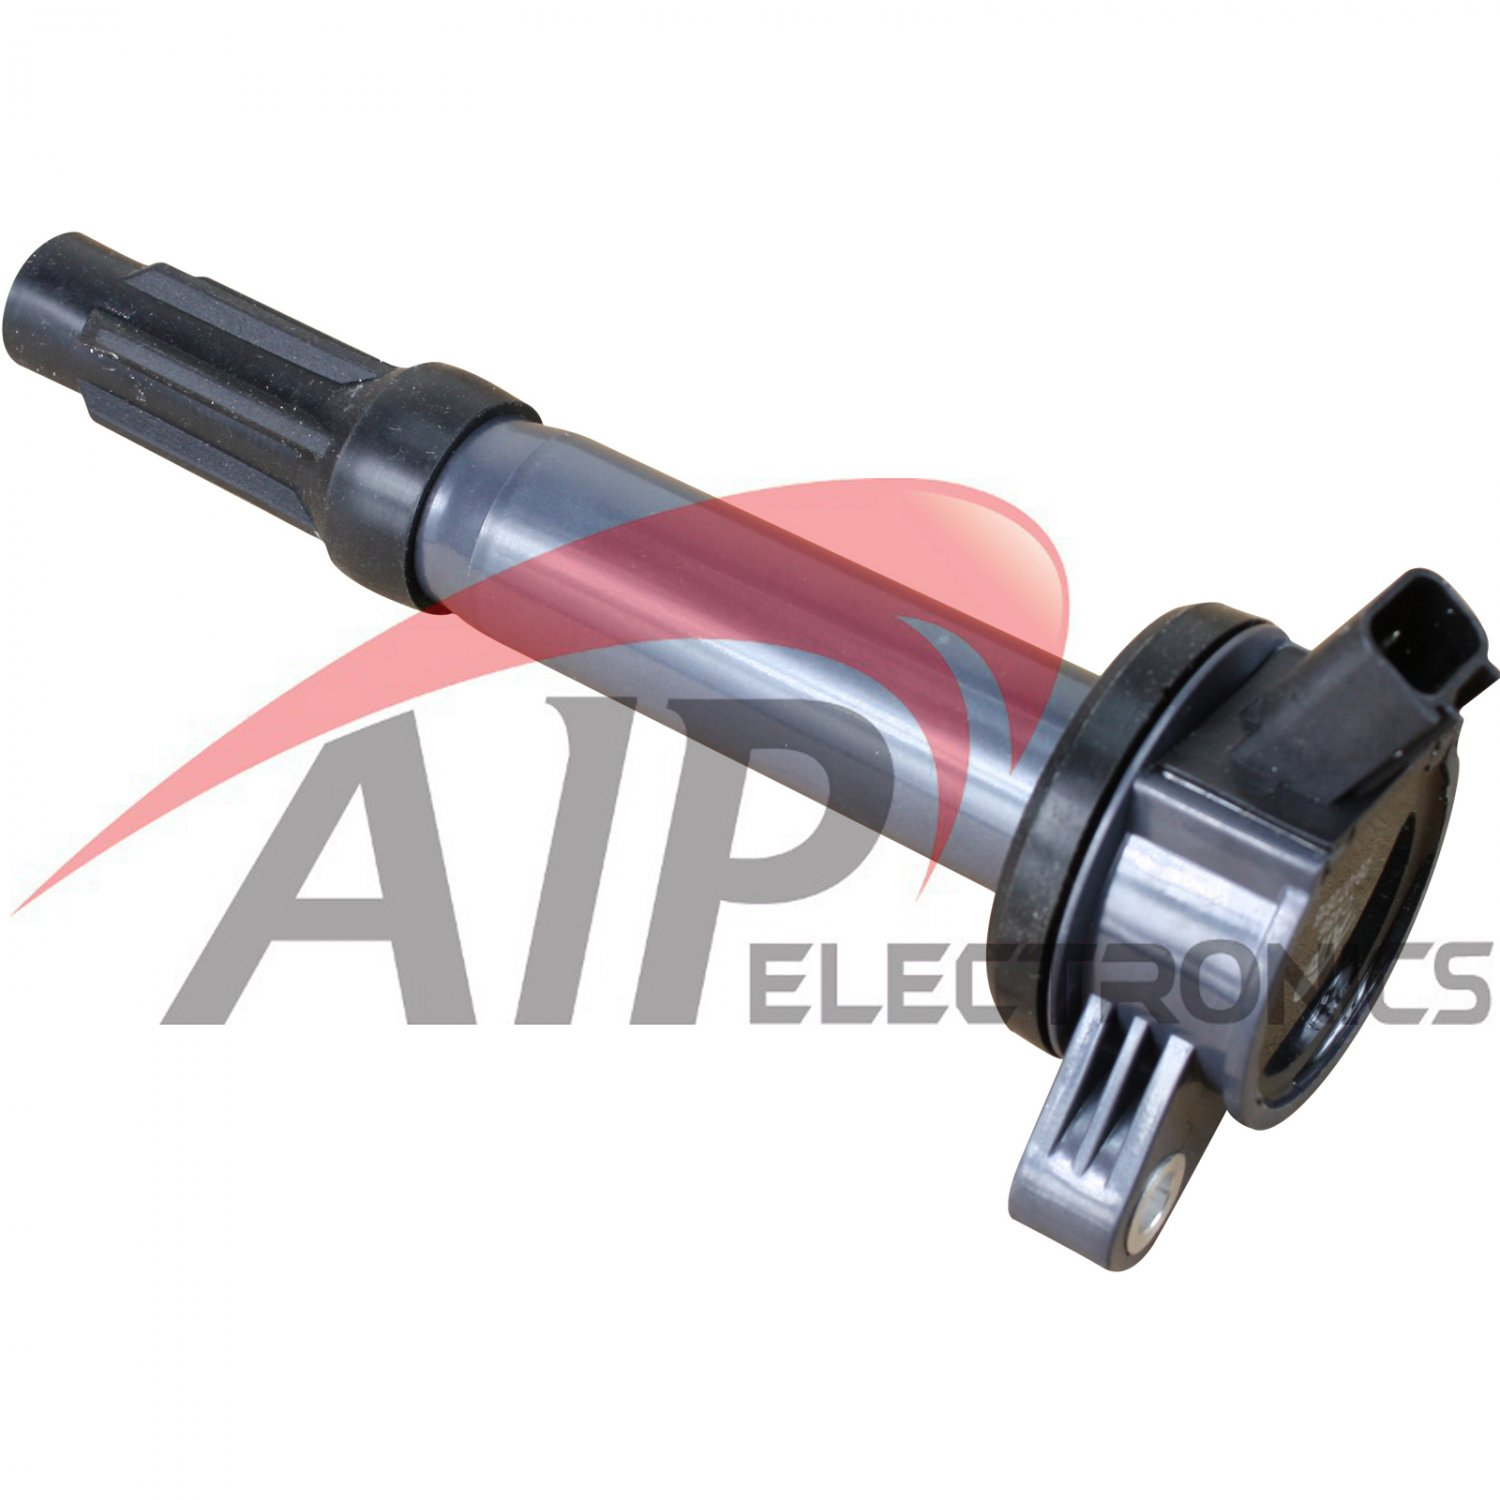 Brand New Ignition Coil Pack / Pencil / Coil on Plug 05-09 FORD /MERCURY 3.0L V6 Complete Oem Fit C4